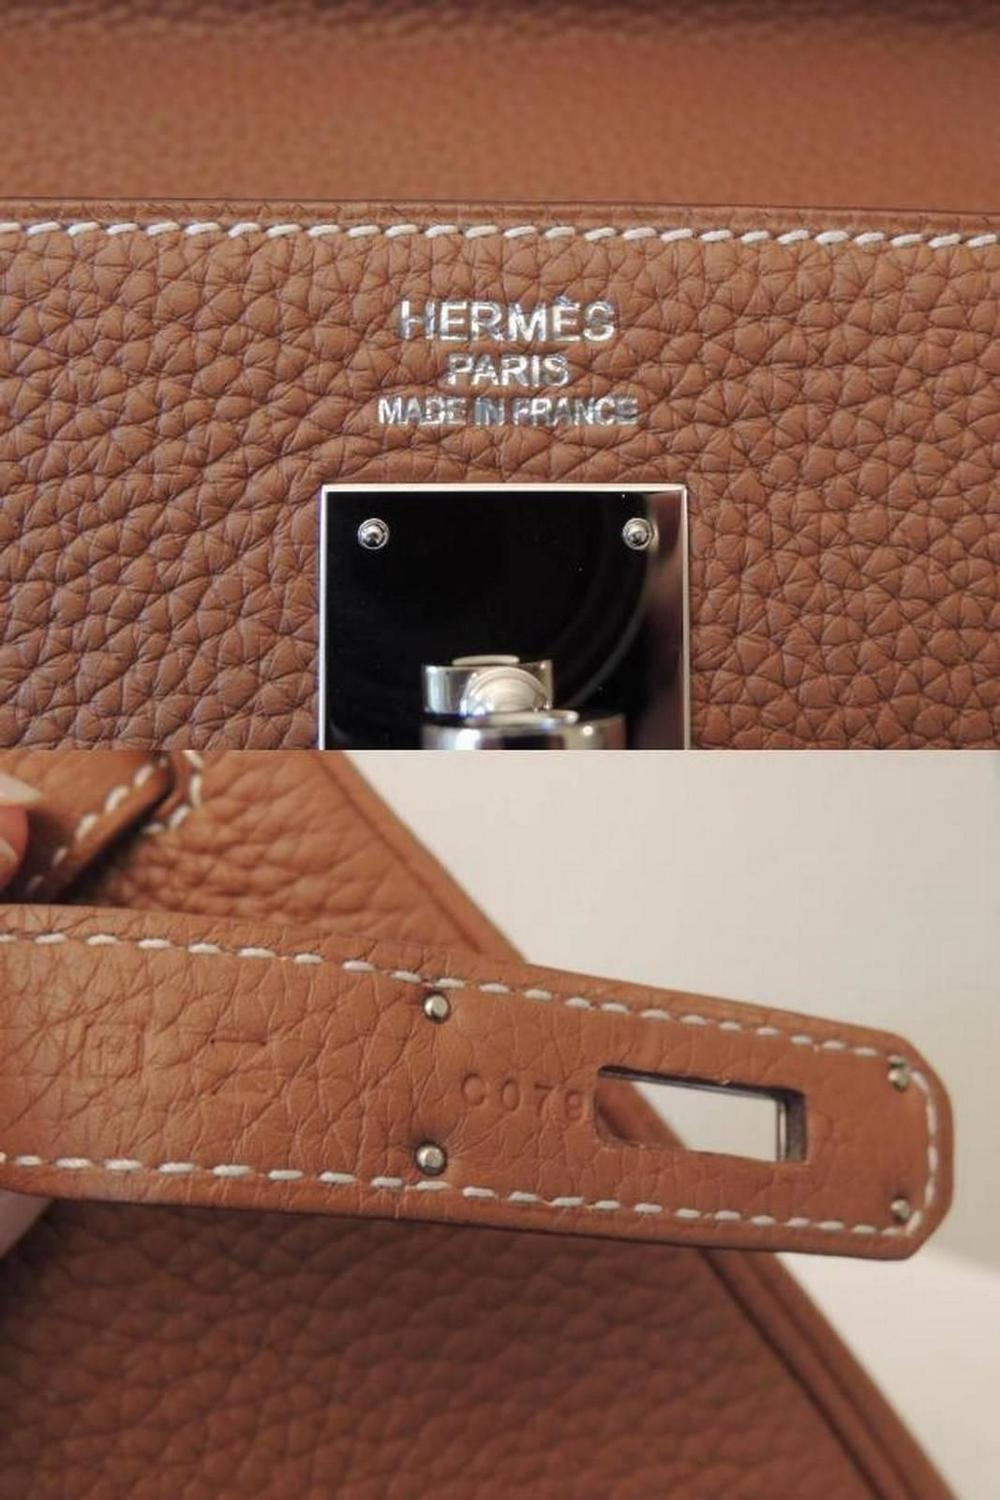 used hermes birkin bag for sale - Hermes Kelly 35 Handle Bag Gold Clemence Leather PHW Full Set at ...